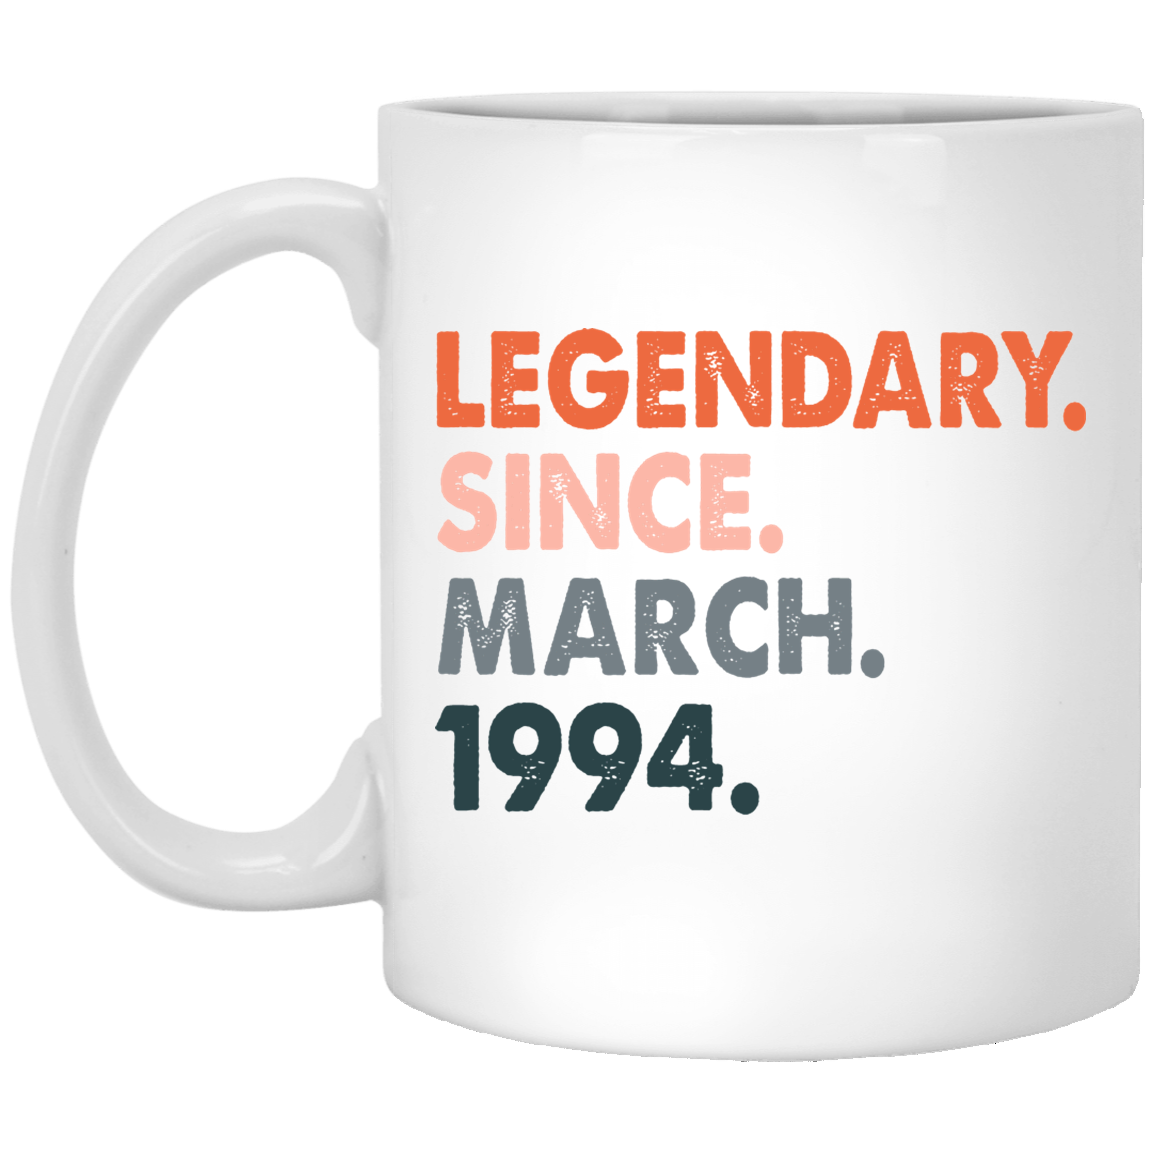 27th-Birthday-Ideas-for-Women-and-Men-Legendary-Since-March-1994 Funny Quotes Coffee Mug 99promocode